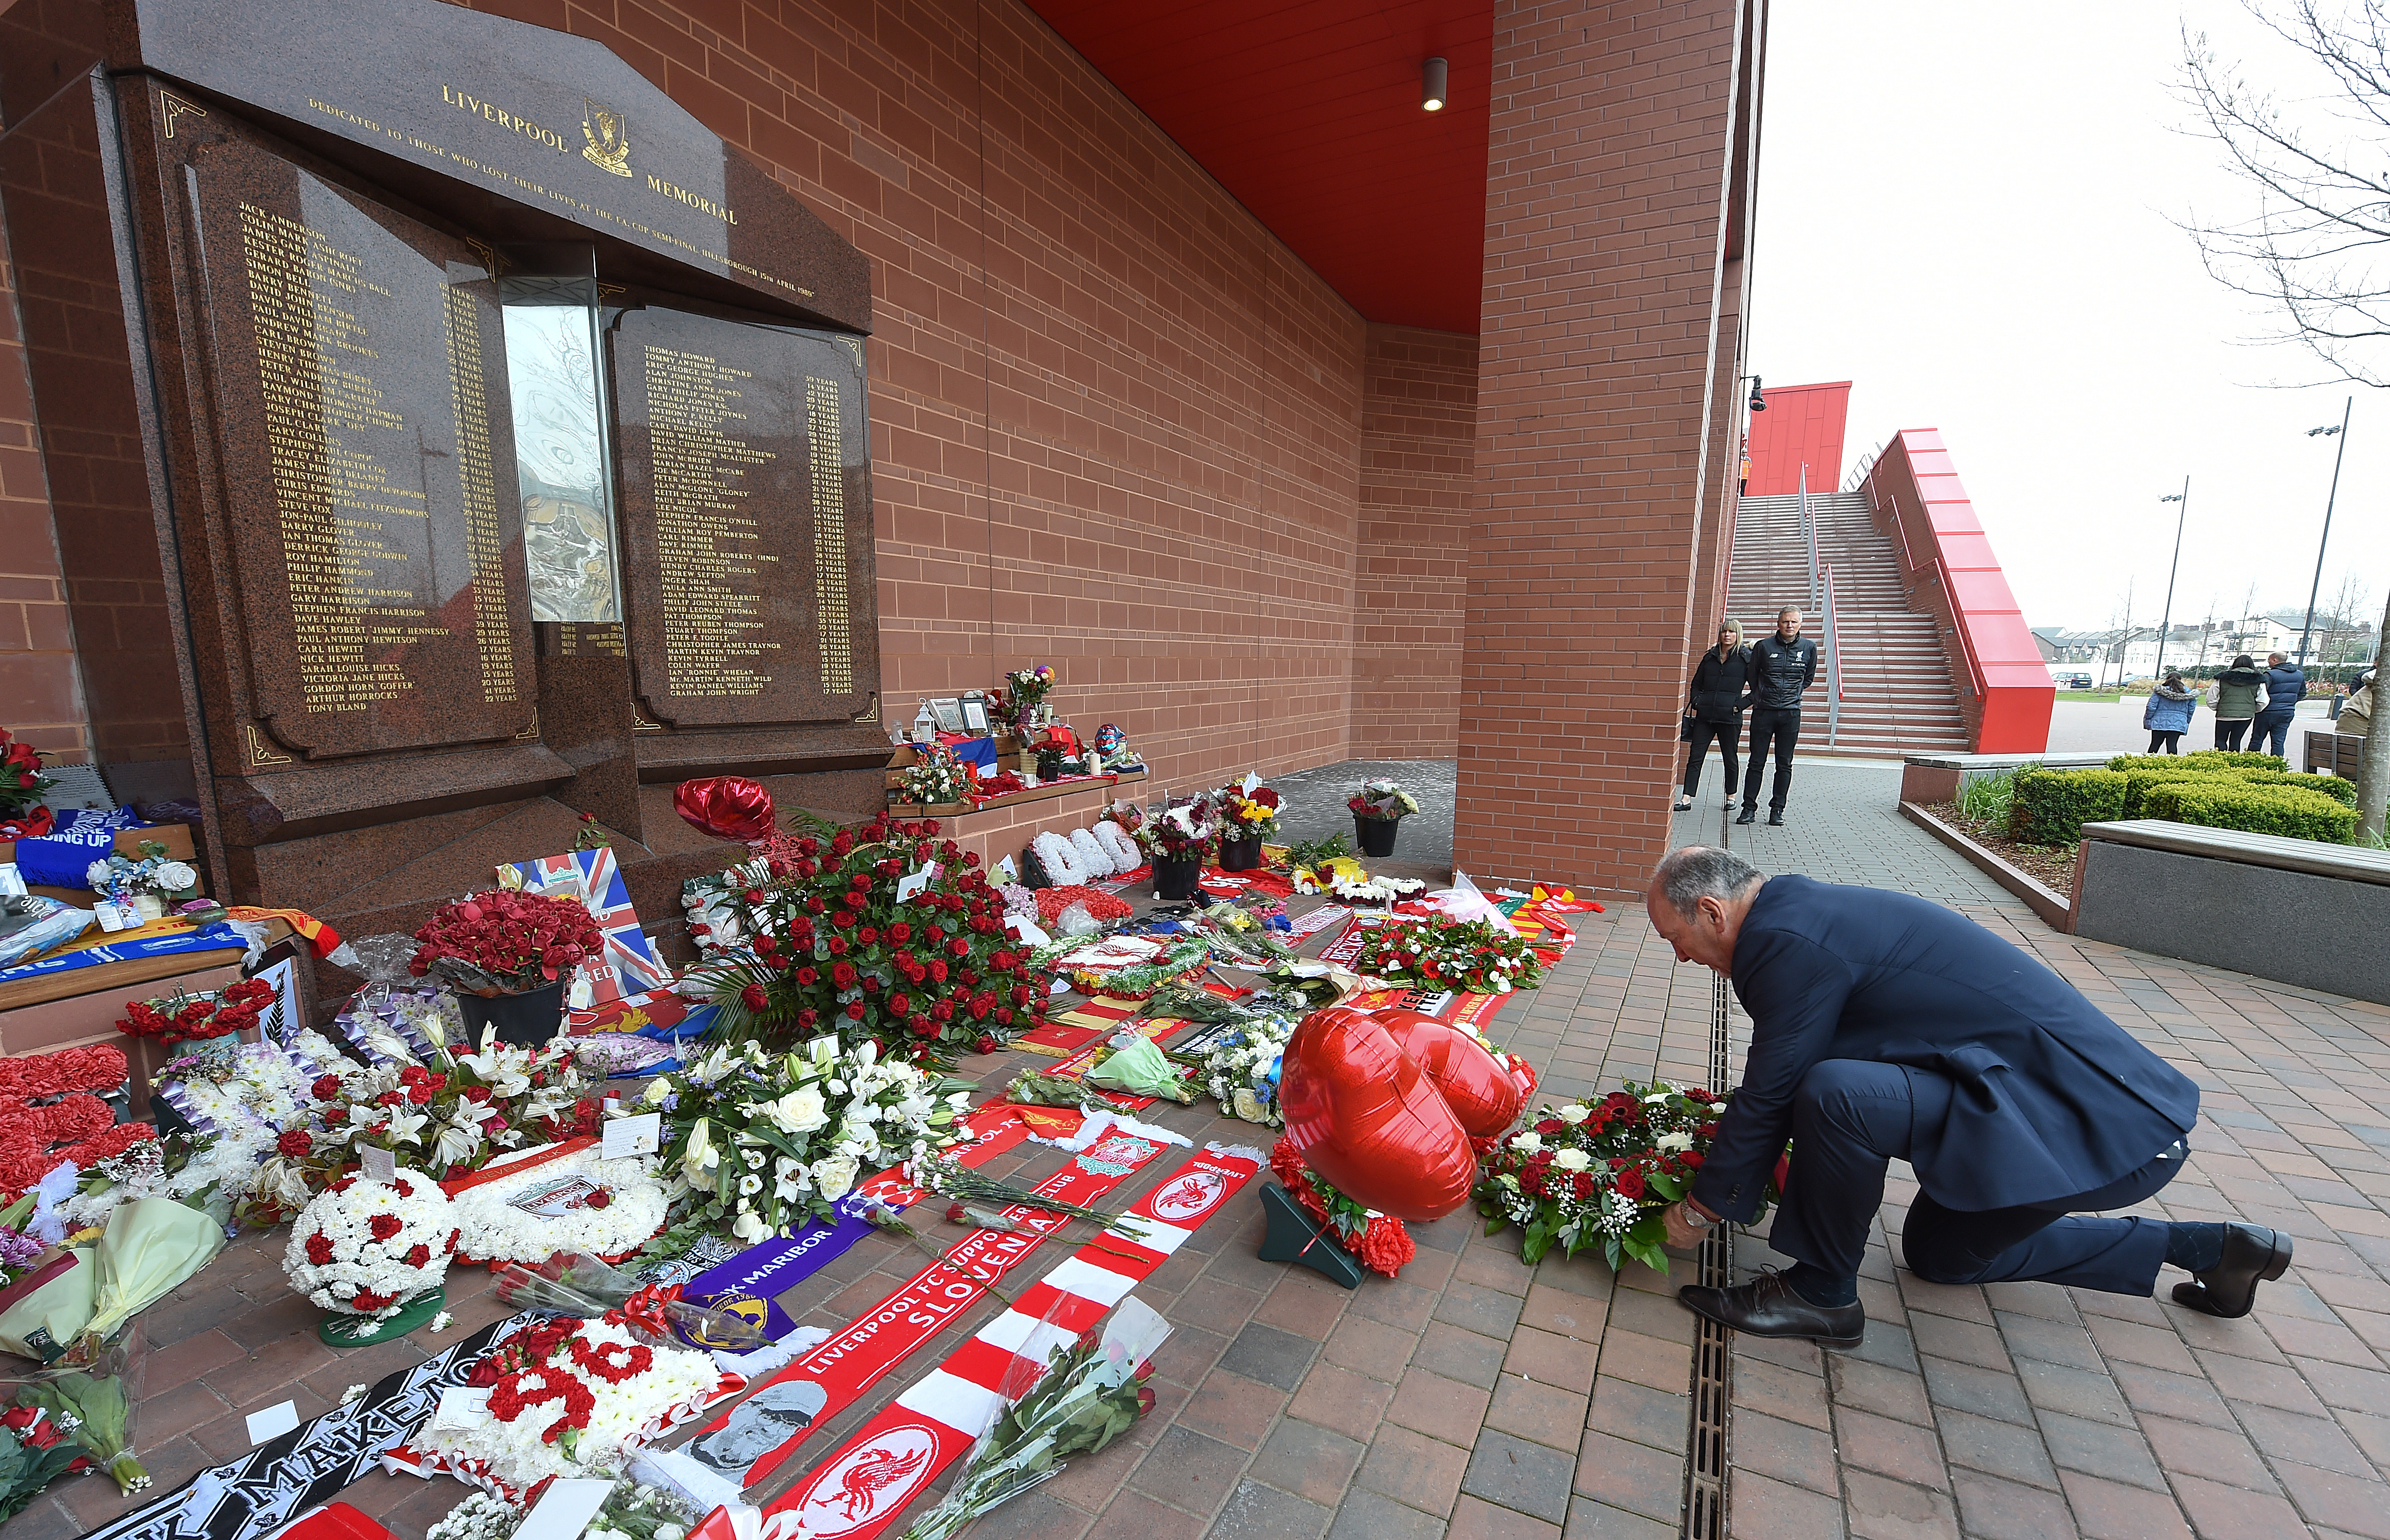 Liverpool Teams Mark The 30th Anniversary Of The Hillsborough Disaster